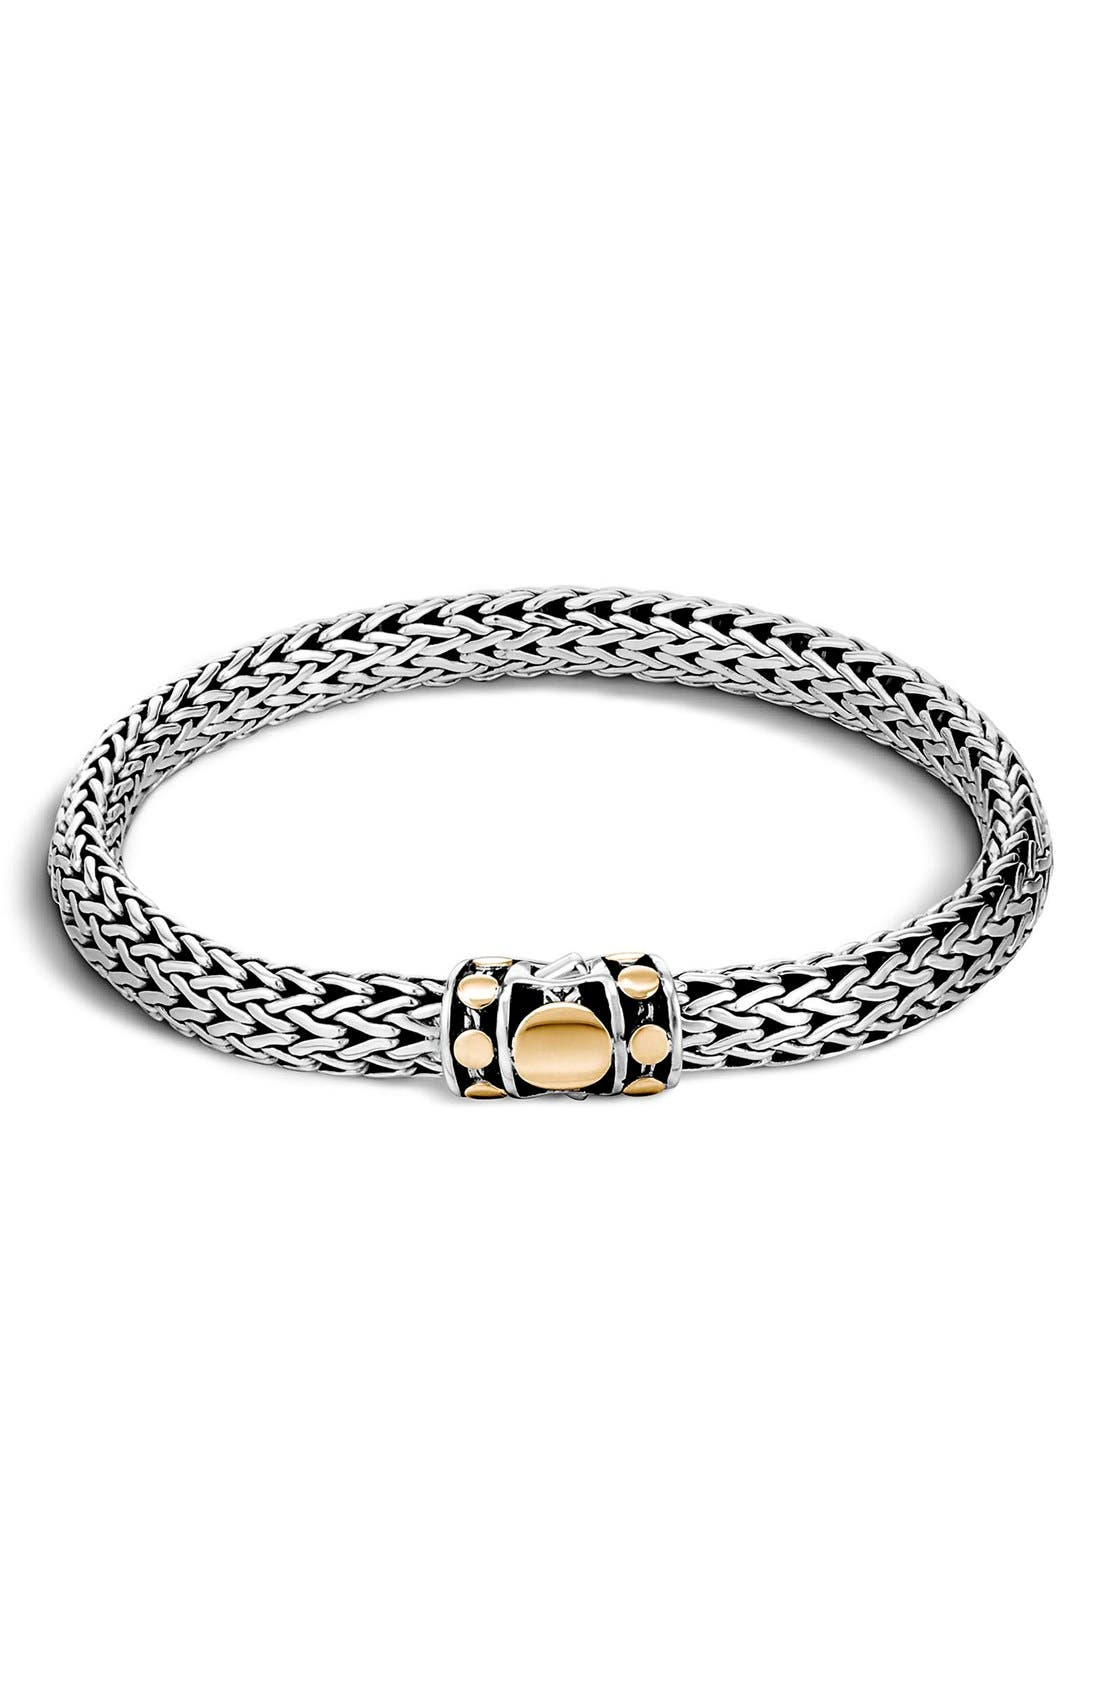 Dot 6.5mm Bracelet,                         Main,                         color, STERLING SILVER - GOLD